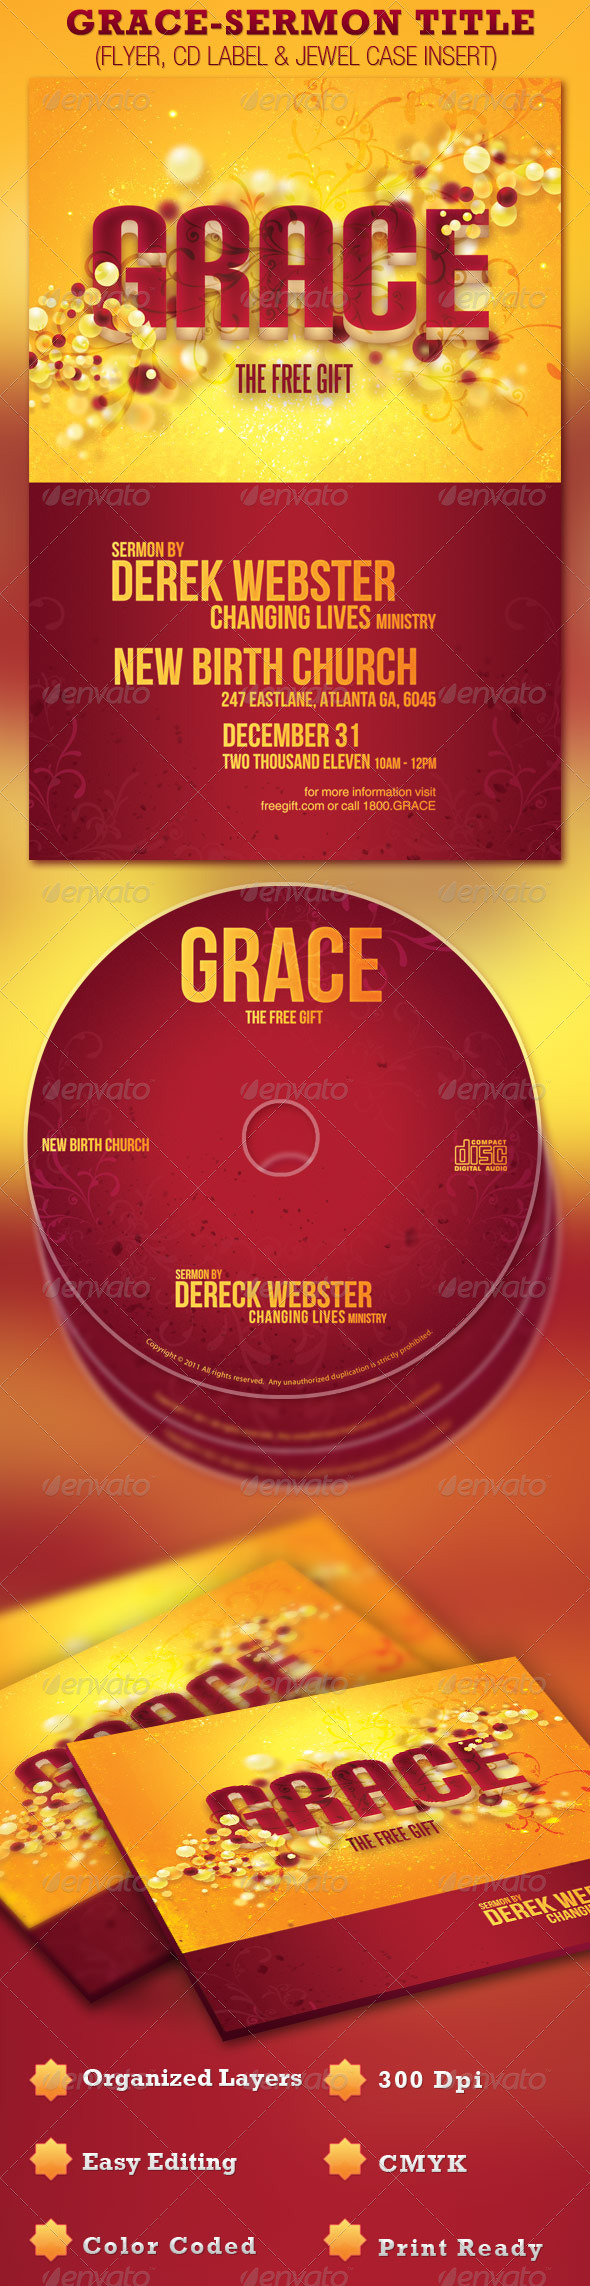 Grace Church Flyer and CD Template - Church Flyers